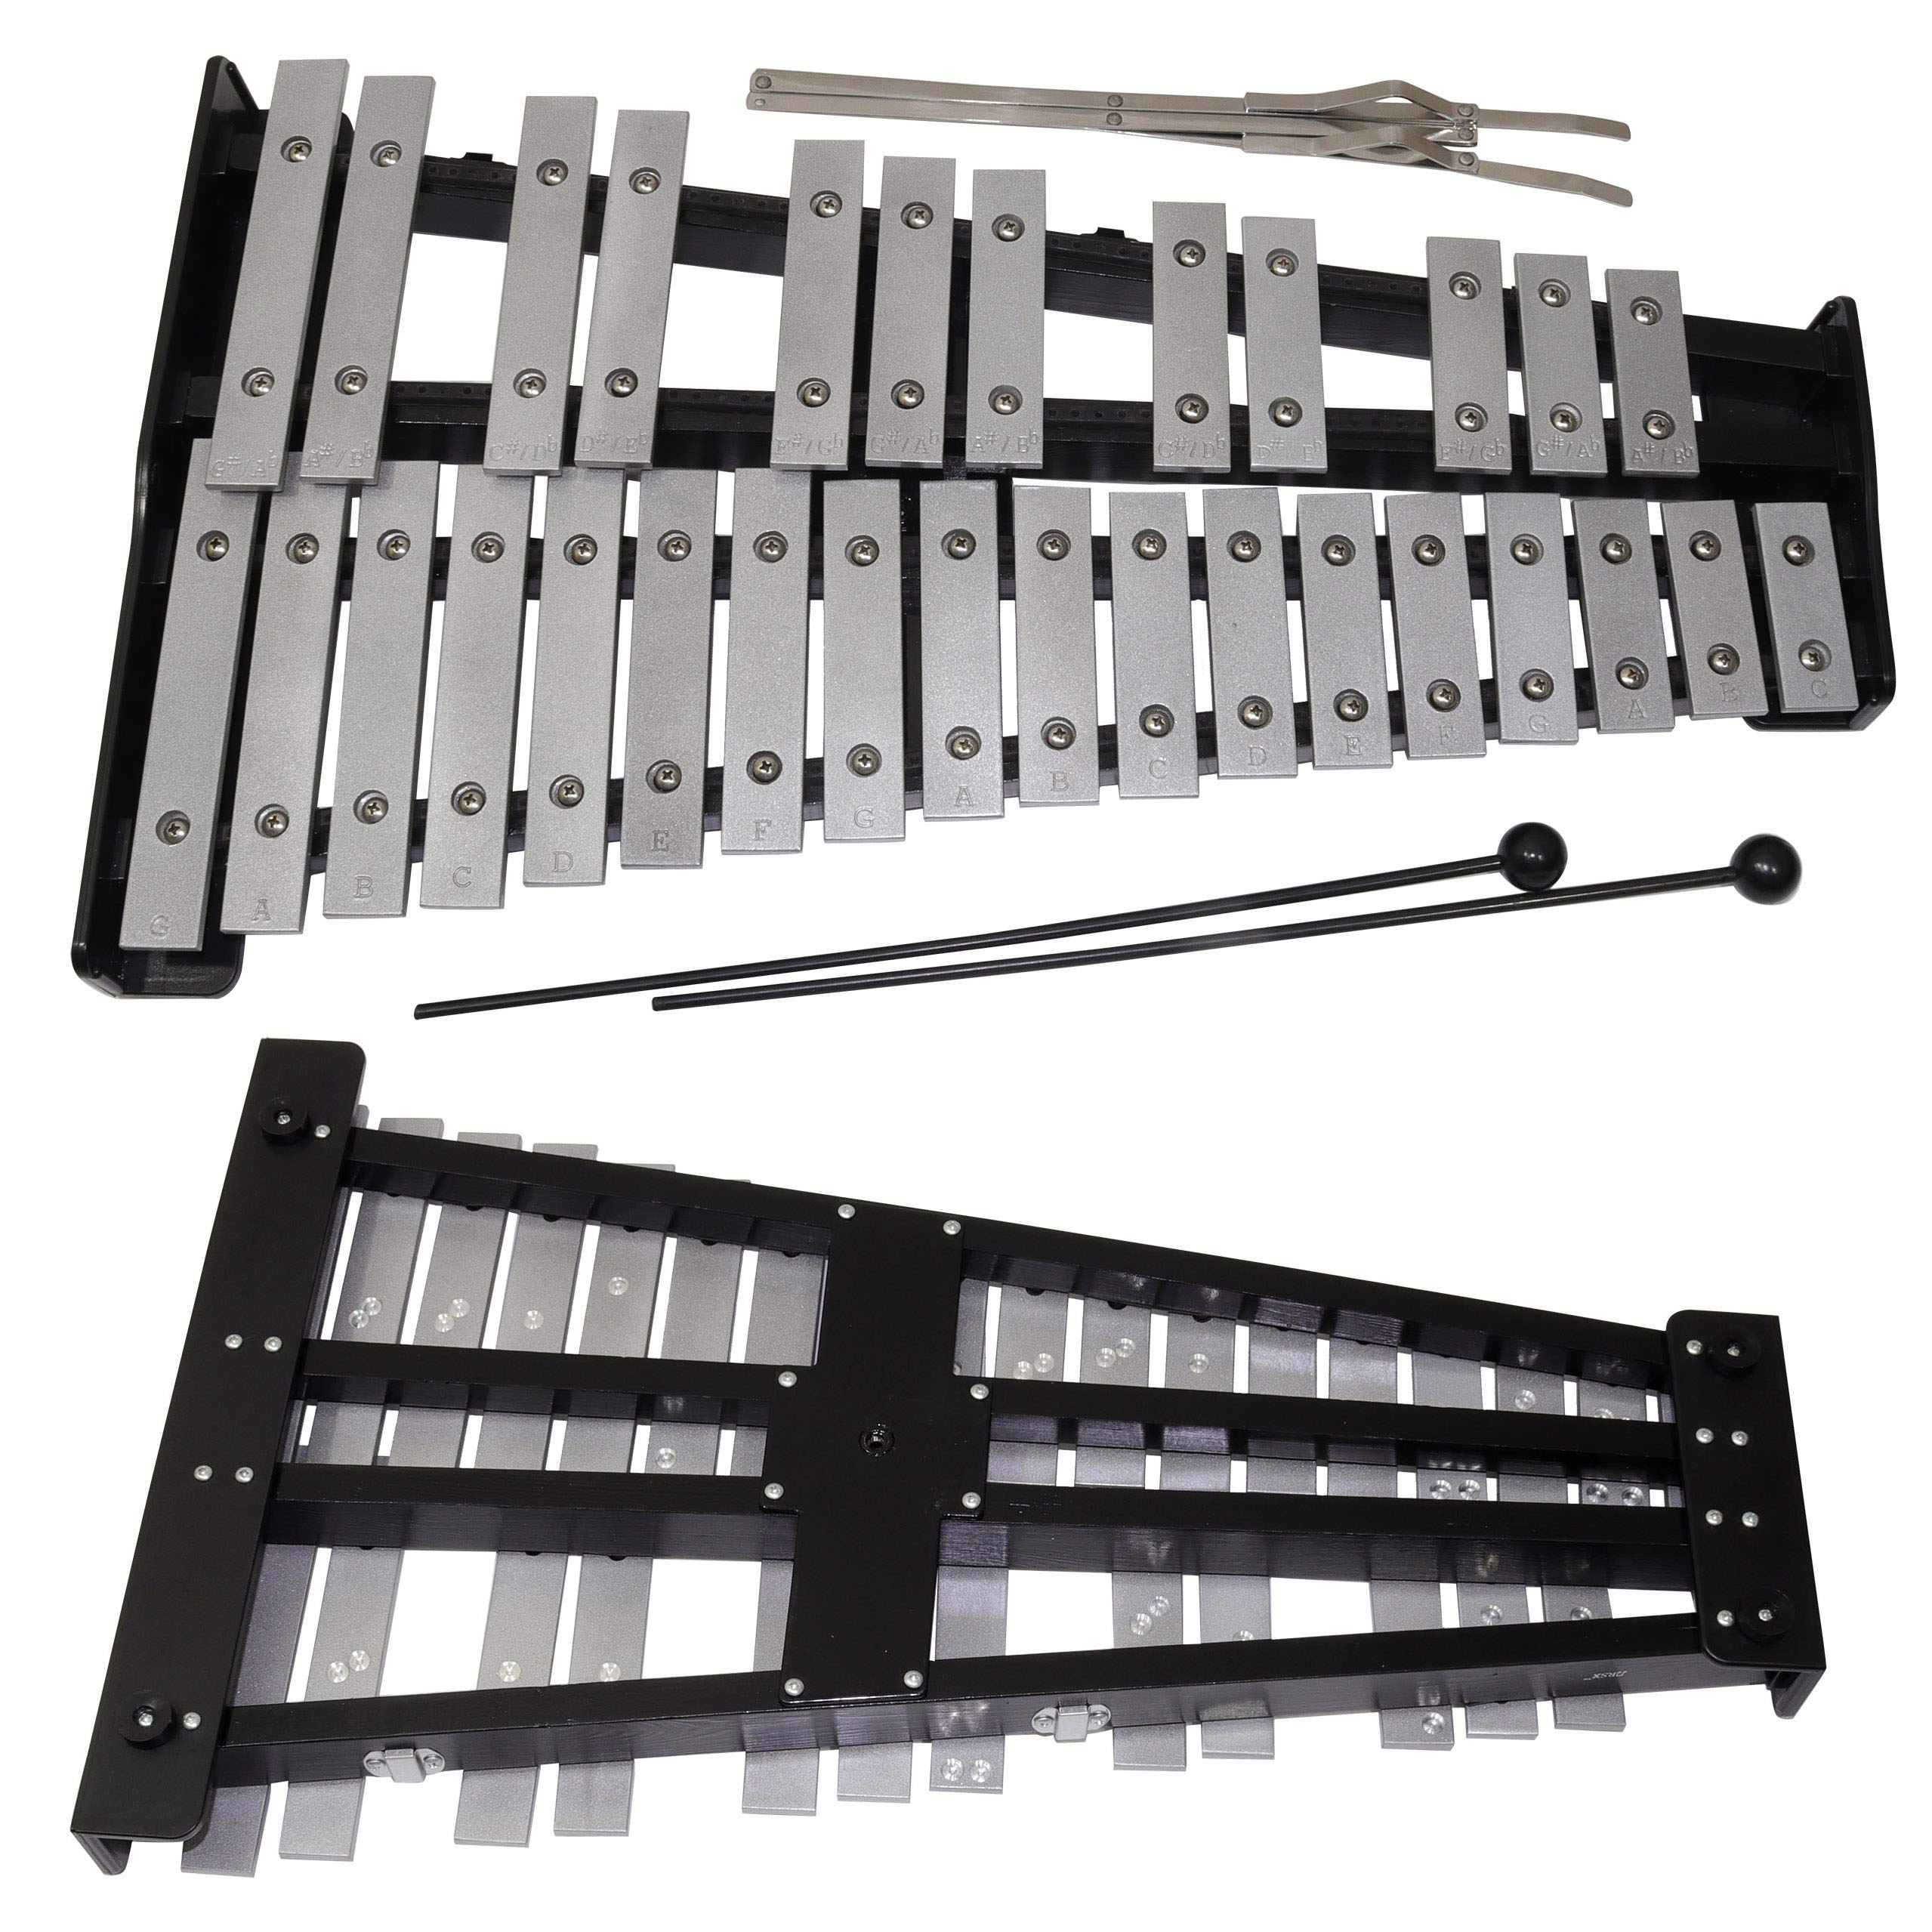 30 note Professional Glockenspiel - Metal Bell Kit Xylophone with Stand, Note Holder and Carrying Bag by inTemenos (Image #8)